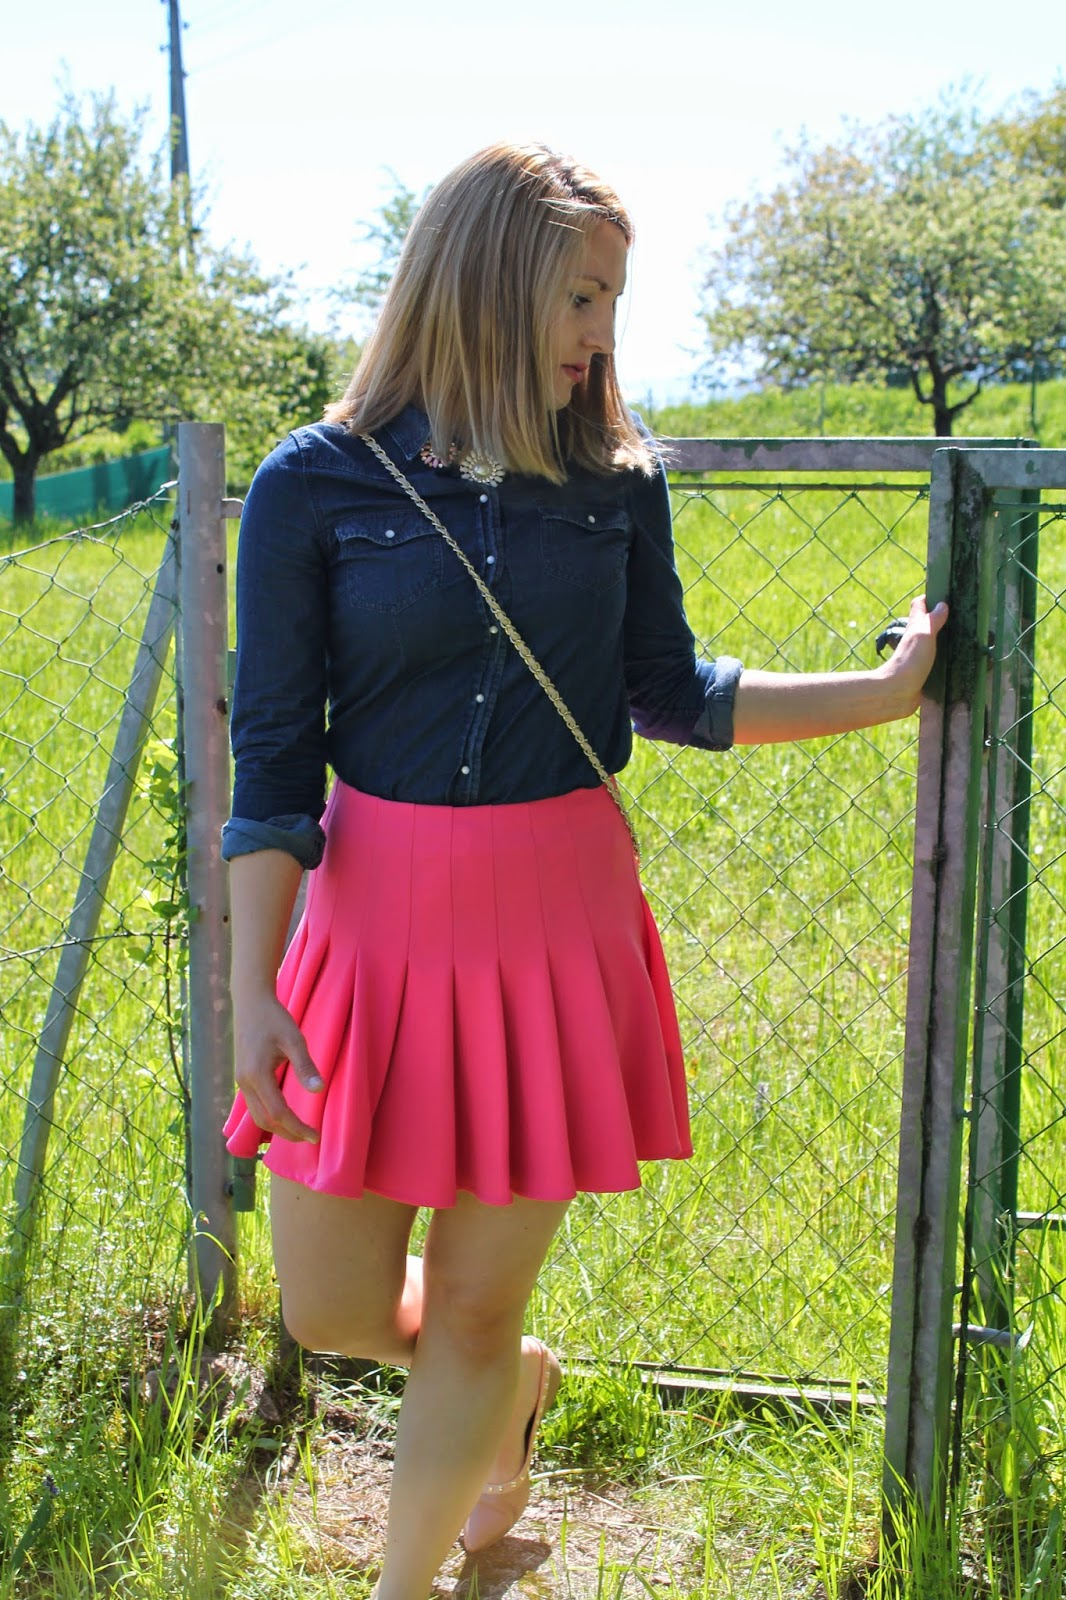 Fashionblogger Austria / Österreich / Deutsch / German / Kärnten / Carinthia / Klagenfurt / Köttmannsdorf / Spring Look / Classy / Edgy / Preppy/ H&M / Pink / Skirt / Skater Skirt / Valentino / Studded Flats / Statement Necklace / Asos / Oasap / C&A / Clockhouse / Jeans Blouse /